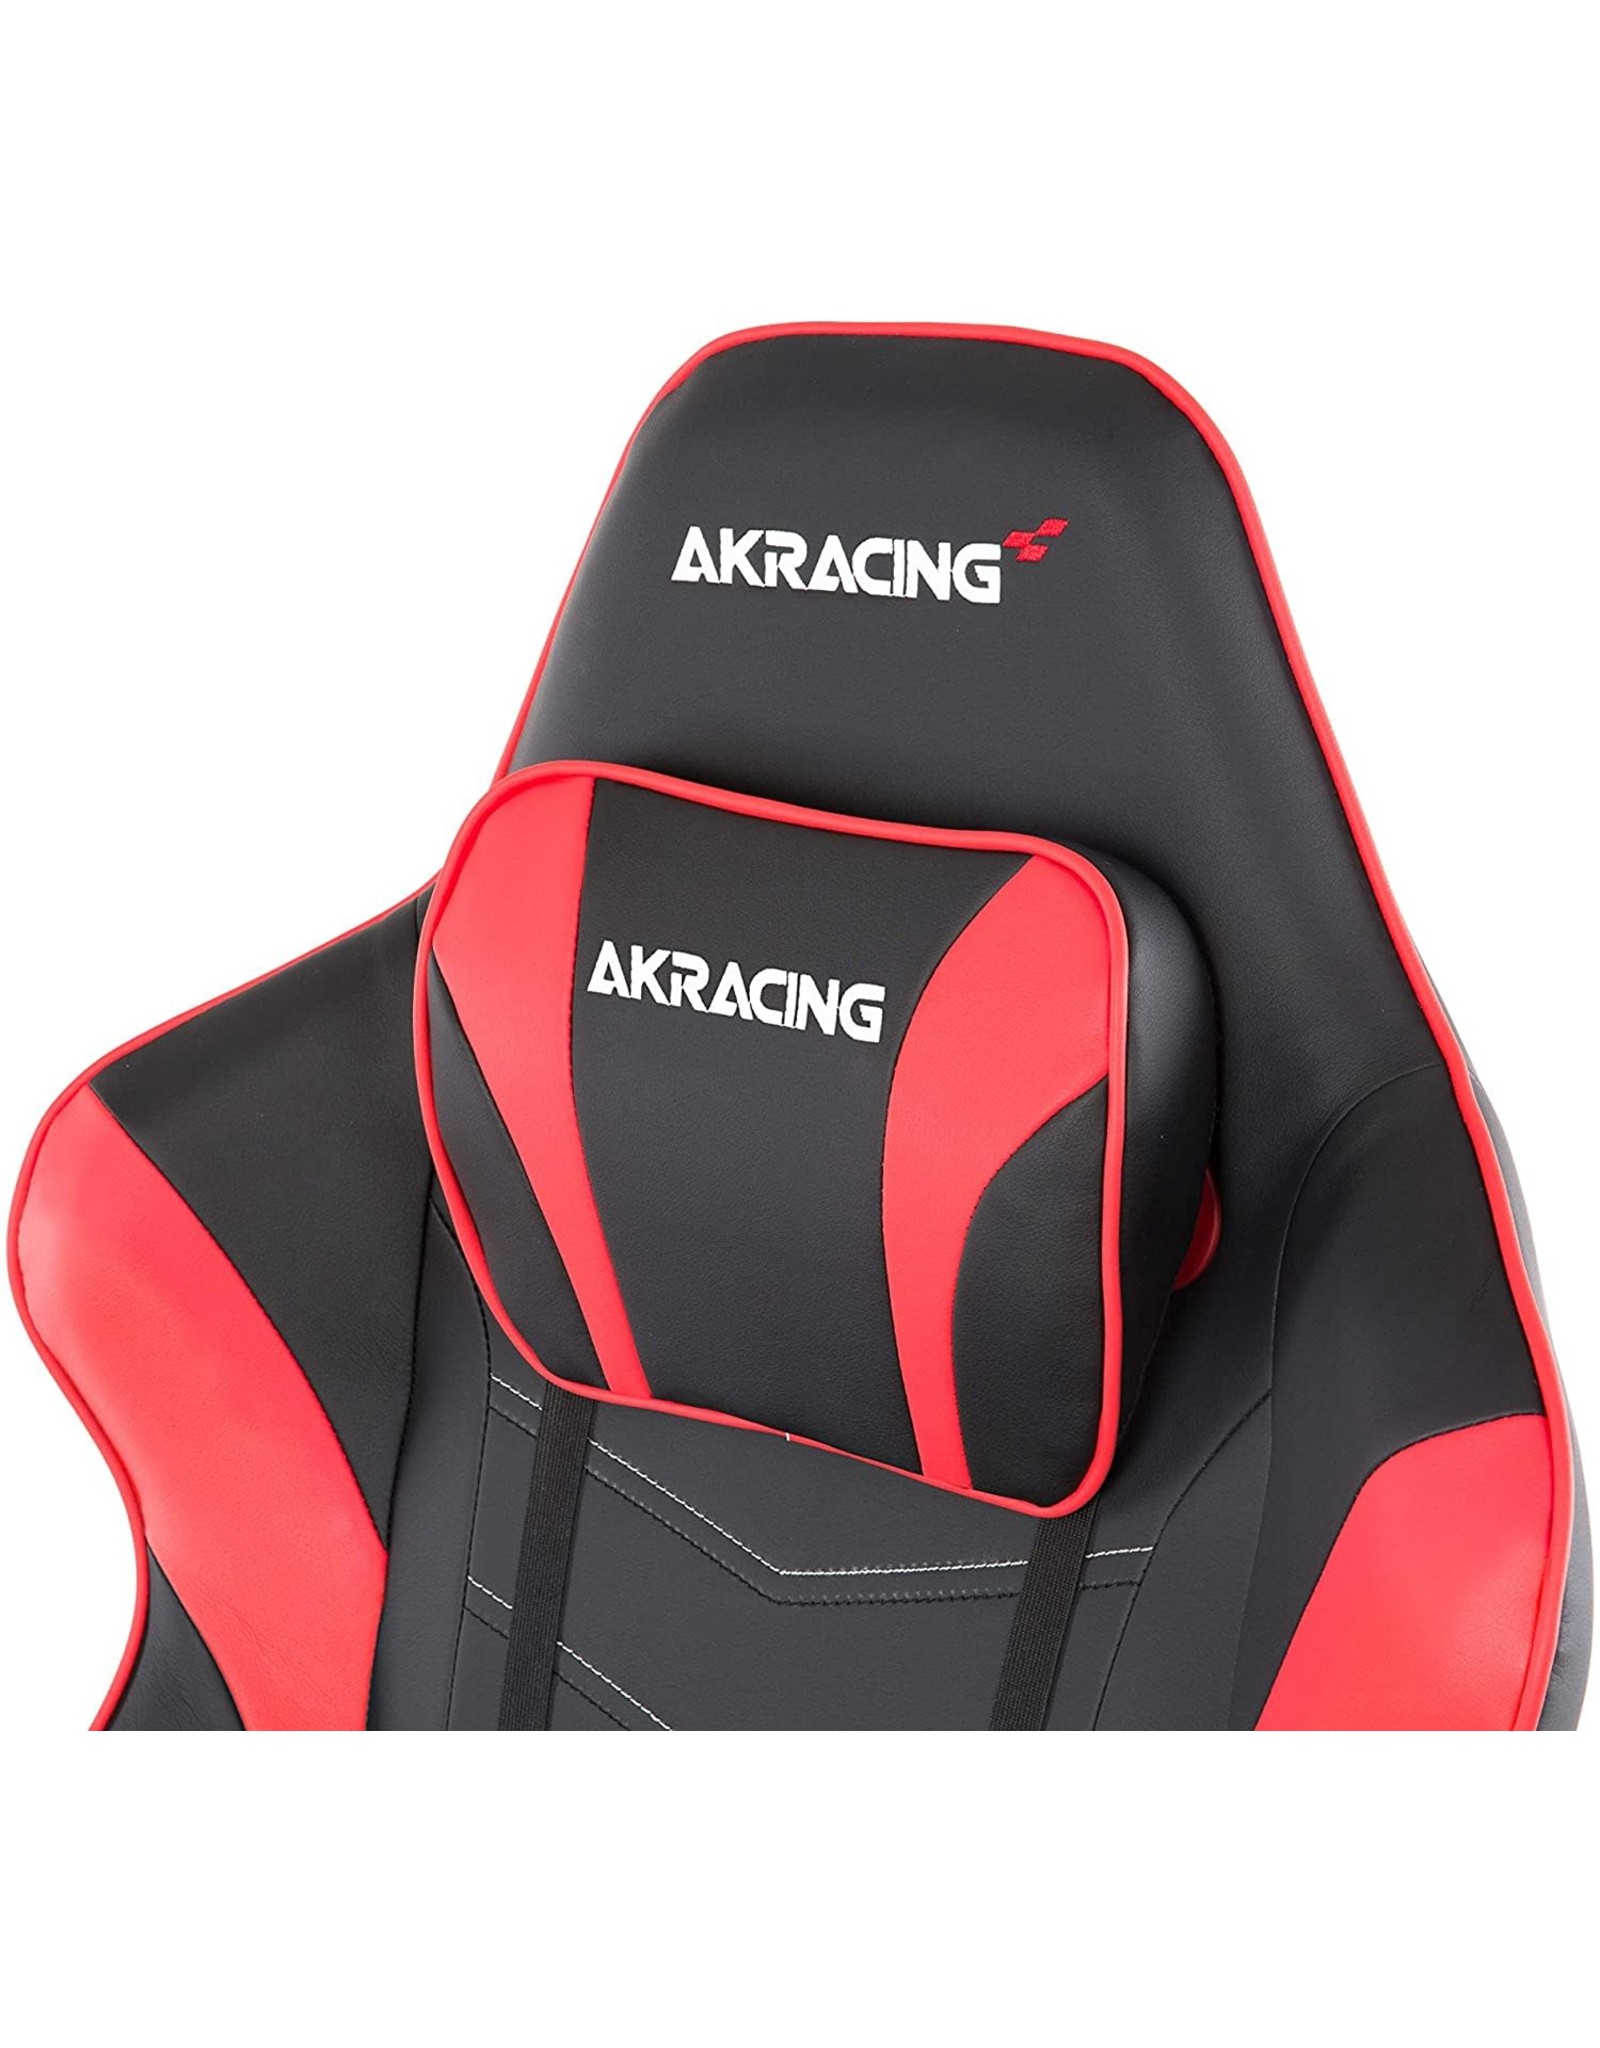 AKRacing AKRacing Masters Series Max Gaming Chair with Wide Flat Seat, 400 Lbs Weight Limit, Rocker and Seat Height Adjustment Mechanisms with 5/10  - Black/Red - PC; Mac; Linux